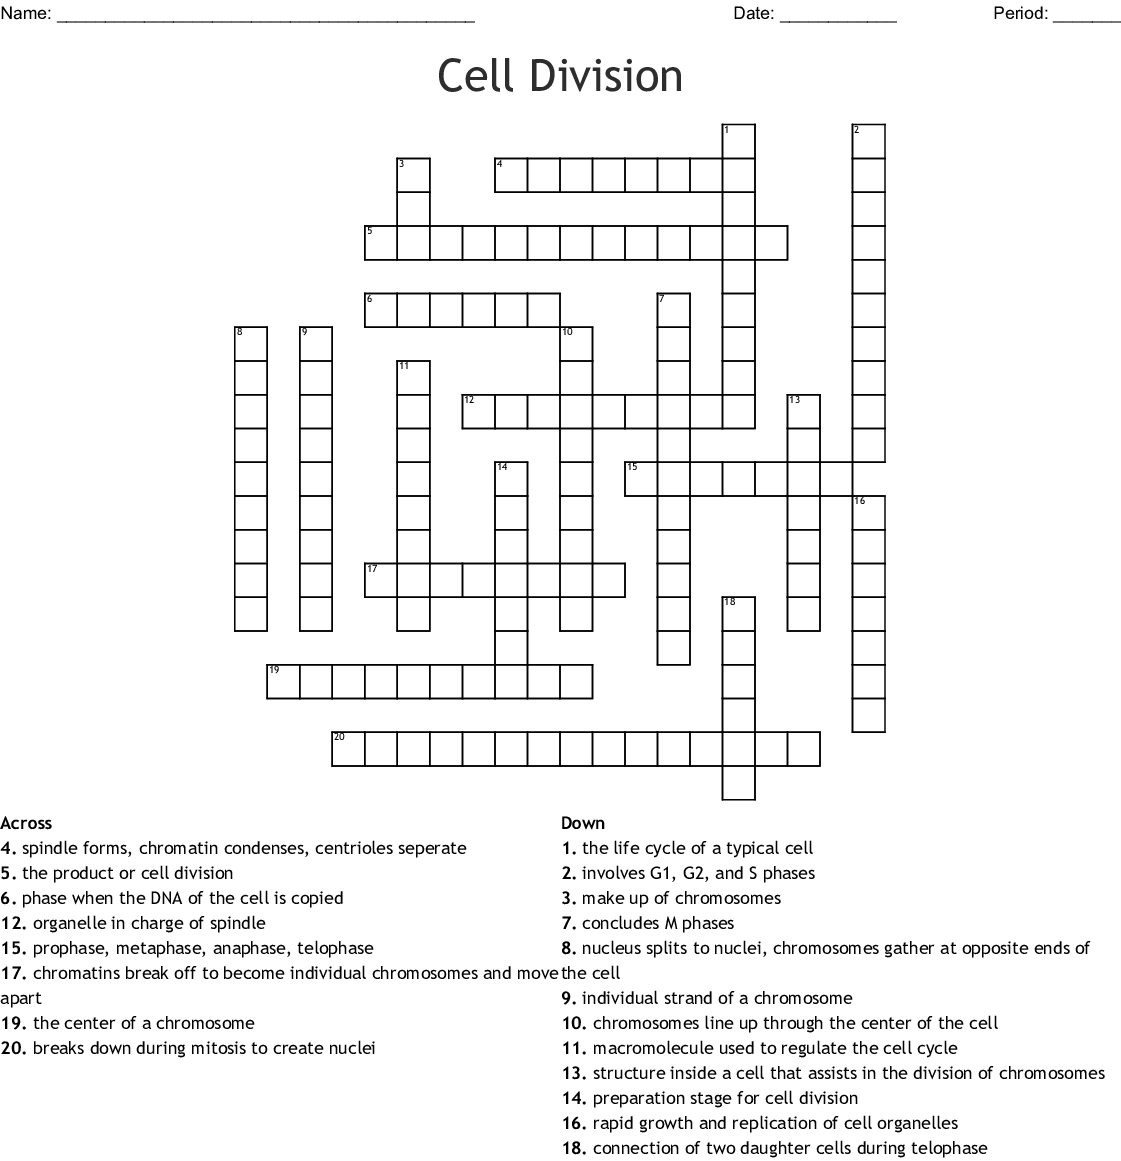 Cell Cycle and Mitosis Crossword - WordMint